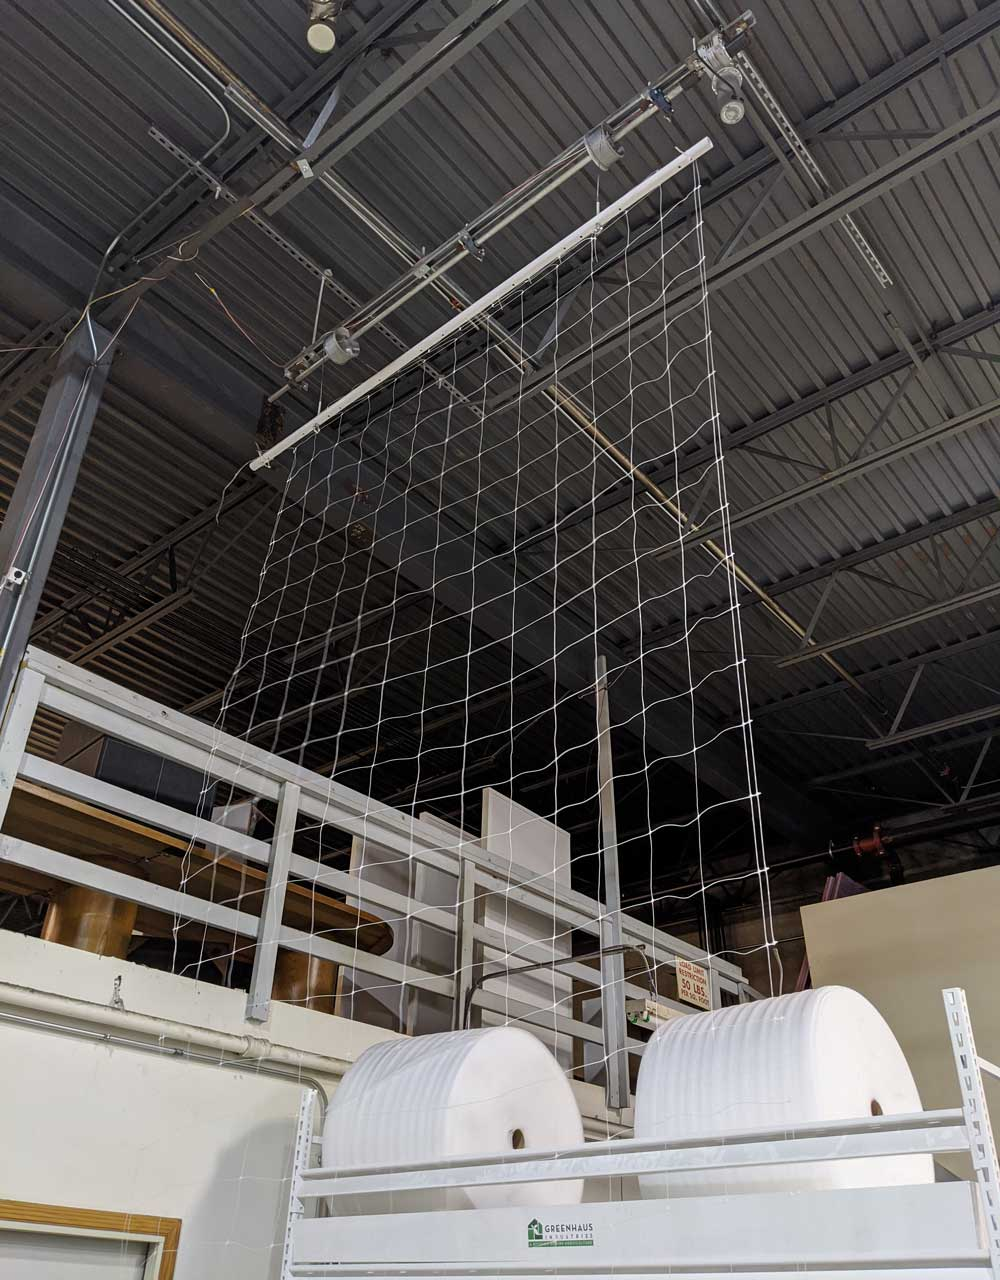 8 ft drying rack ceiling mounted